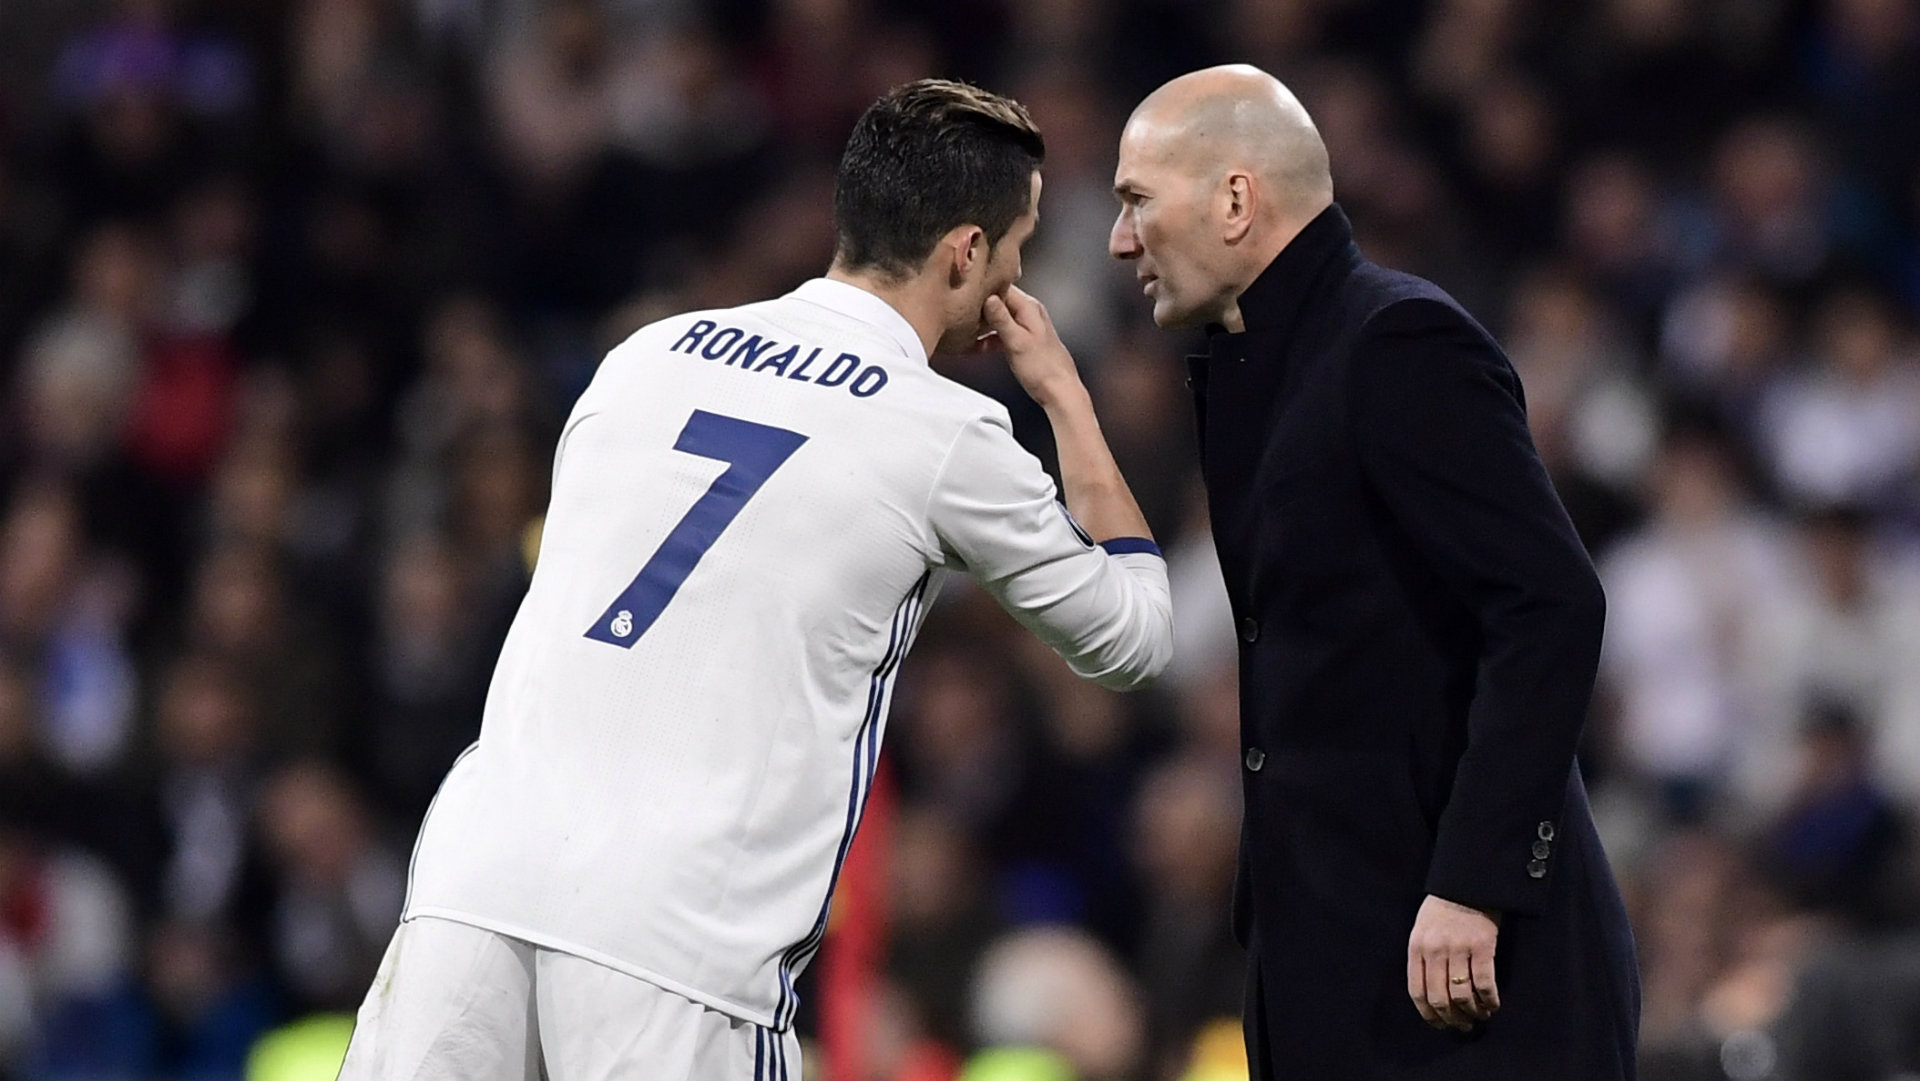 RONALDO TELLS ZIDANE HE WANTS TO LEAVE